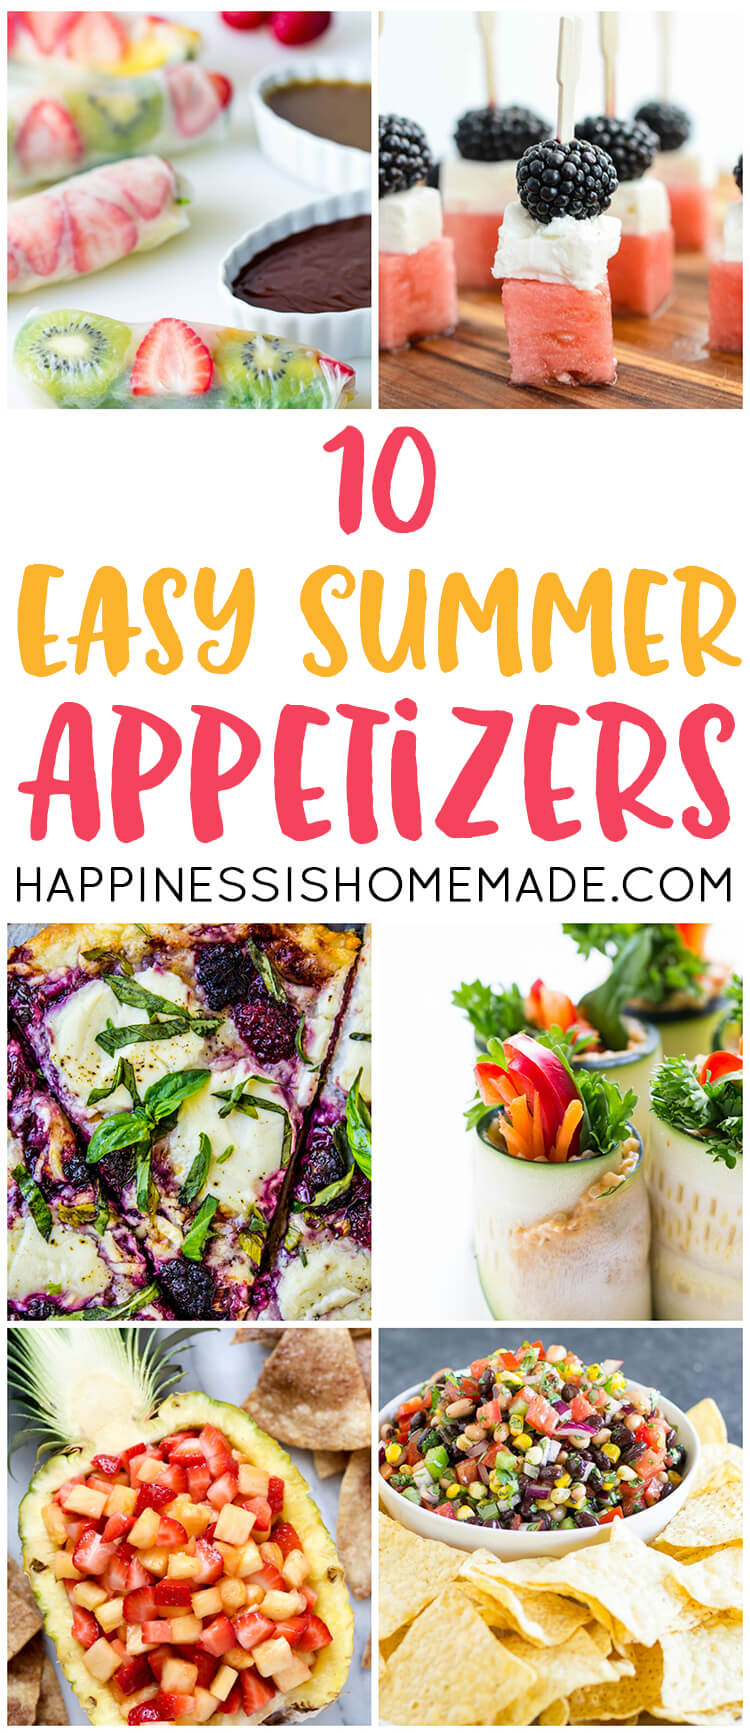 10 Easy Summer Appetizers for Parties